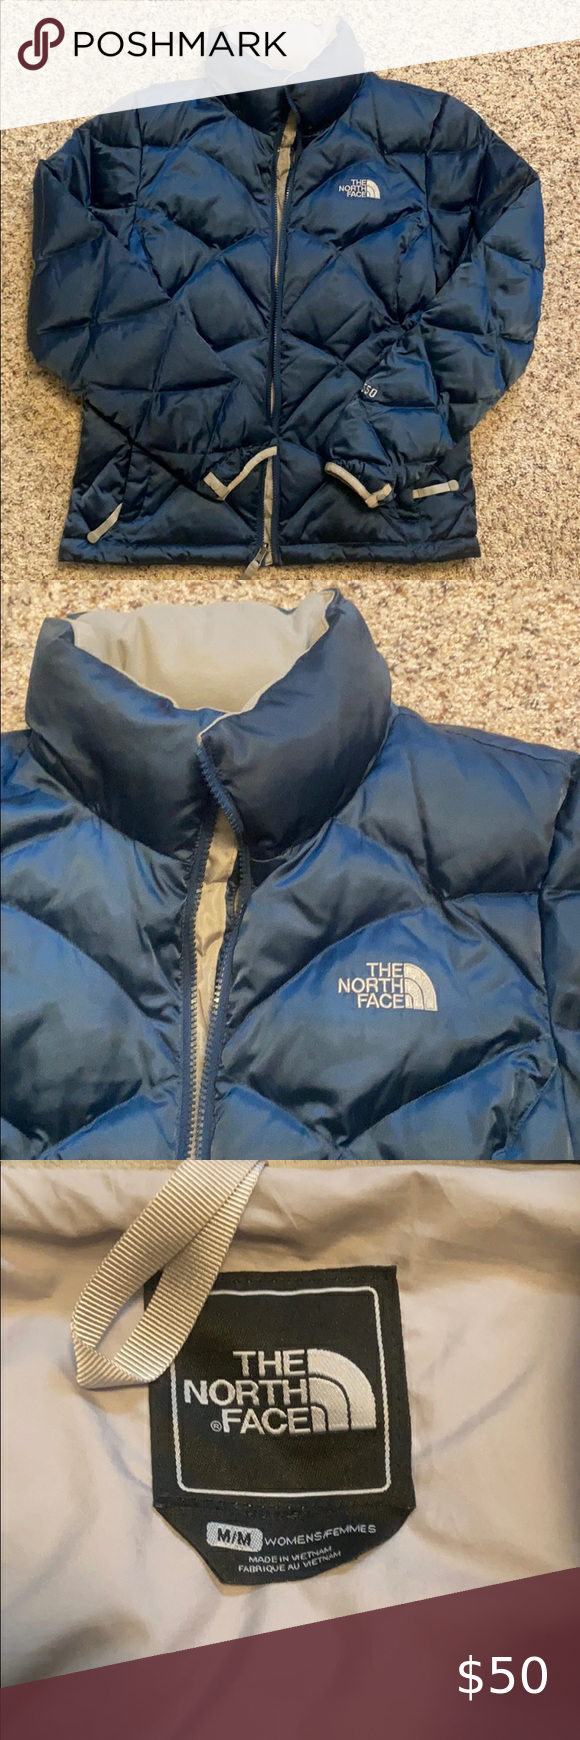 North Face Coat North Face Coat Black North Face Jacket North Face Thermoball Jacket [ 1740 x 580 Pixel ]